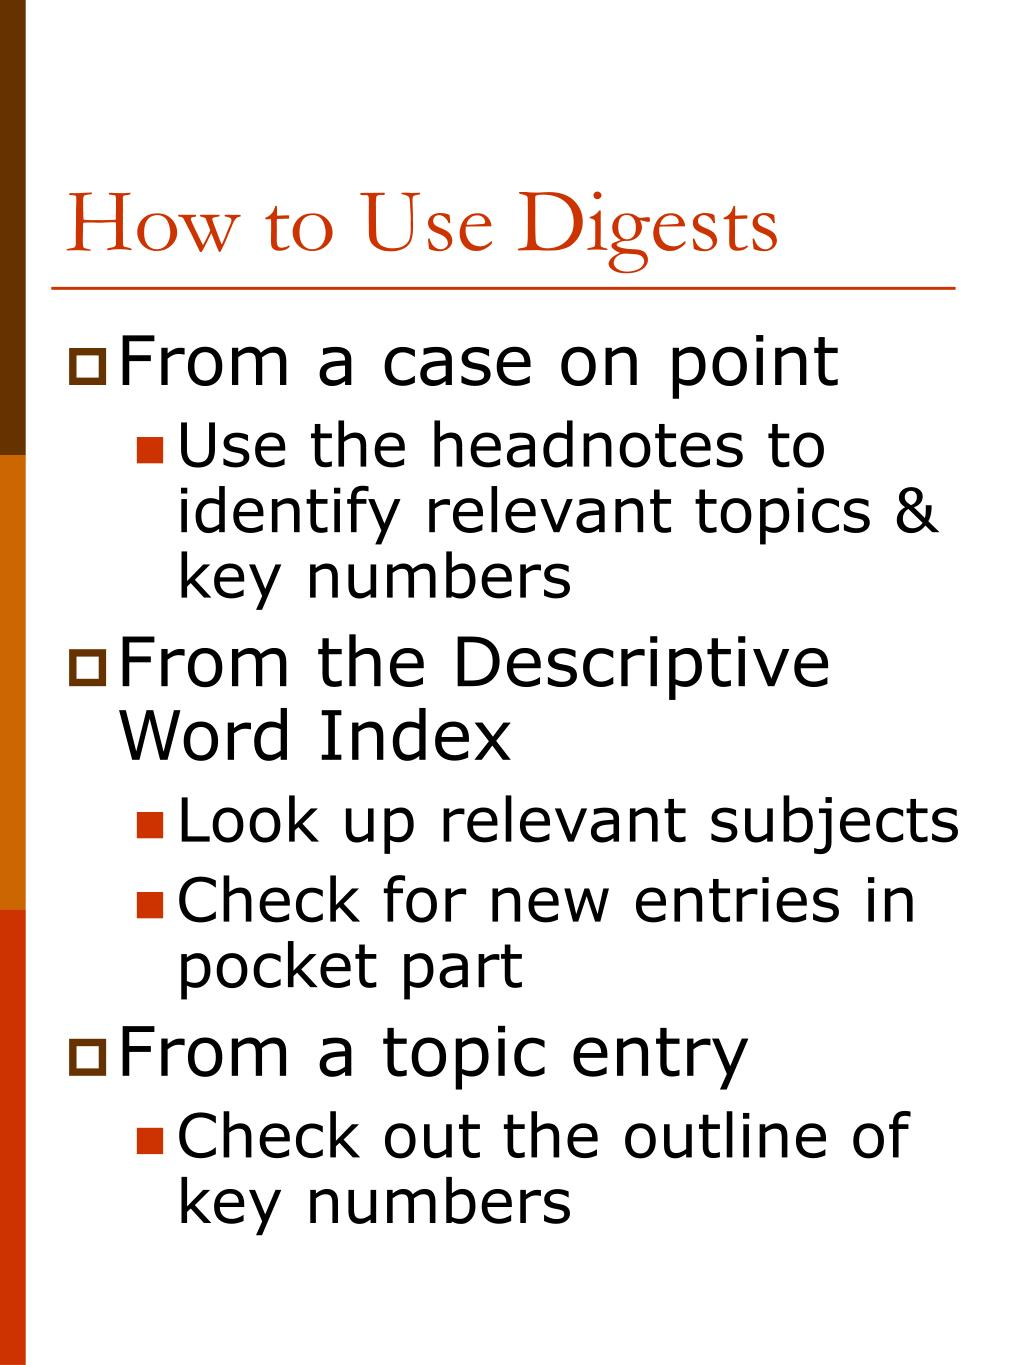 How to Use Digests